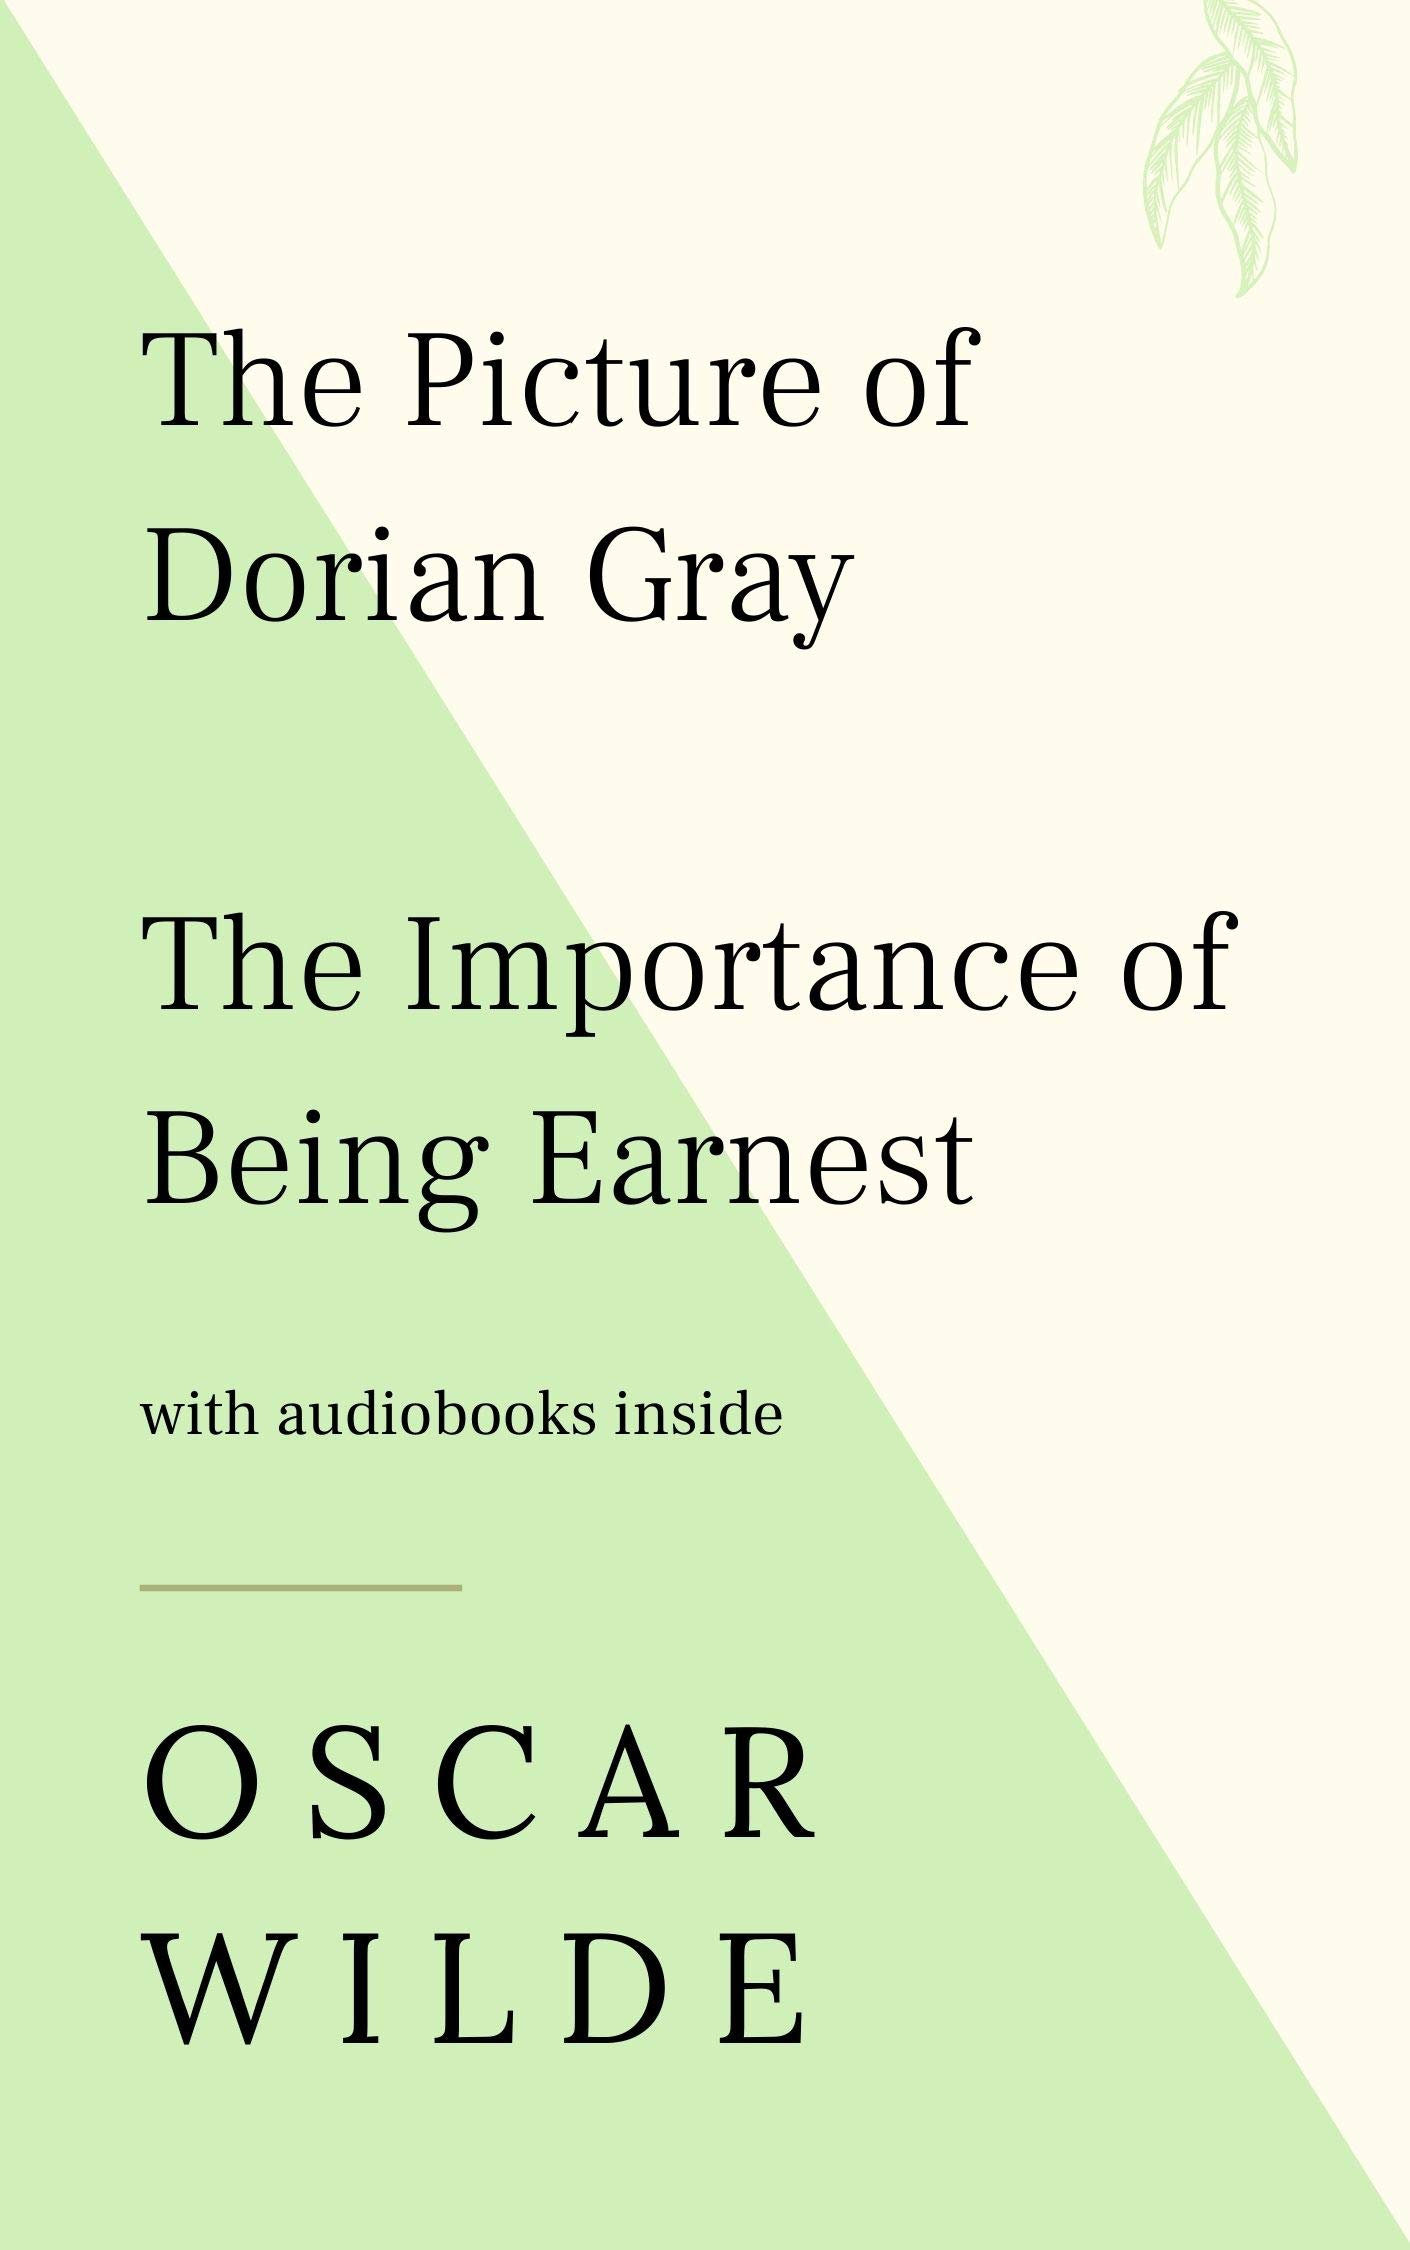 The Picture of Dorian Gray / The Importance of Being Earnest - WITH AUDIOBOOKS INSIDE